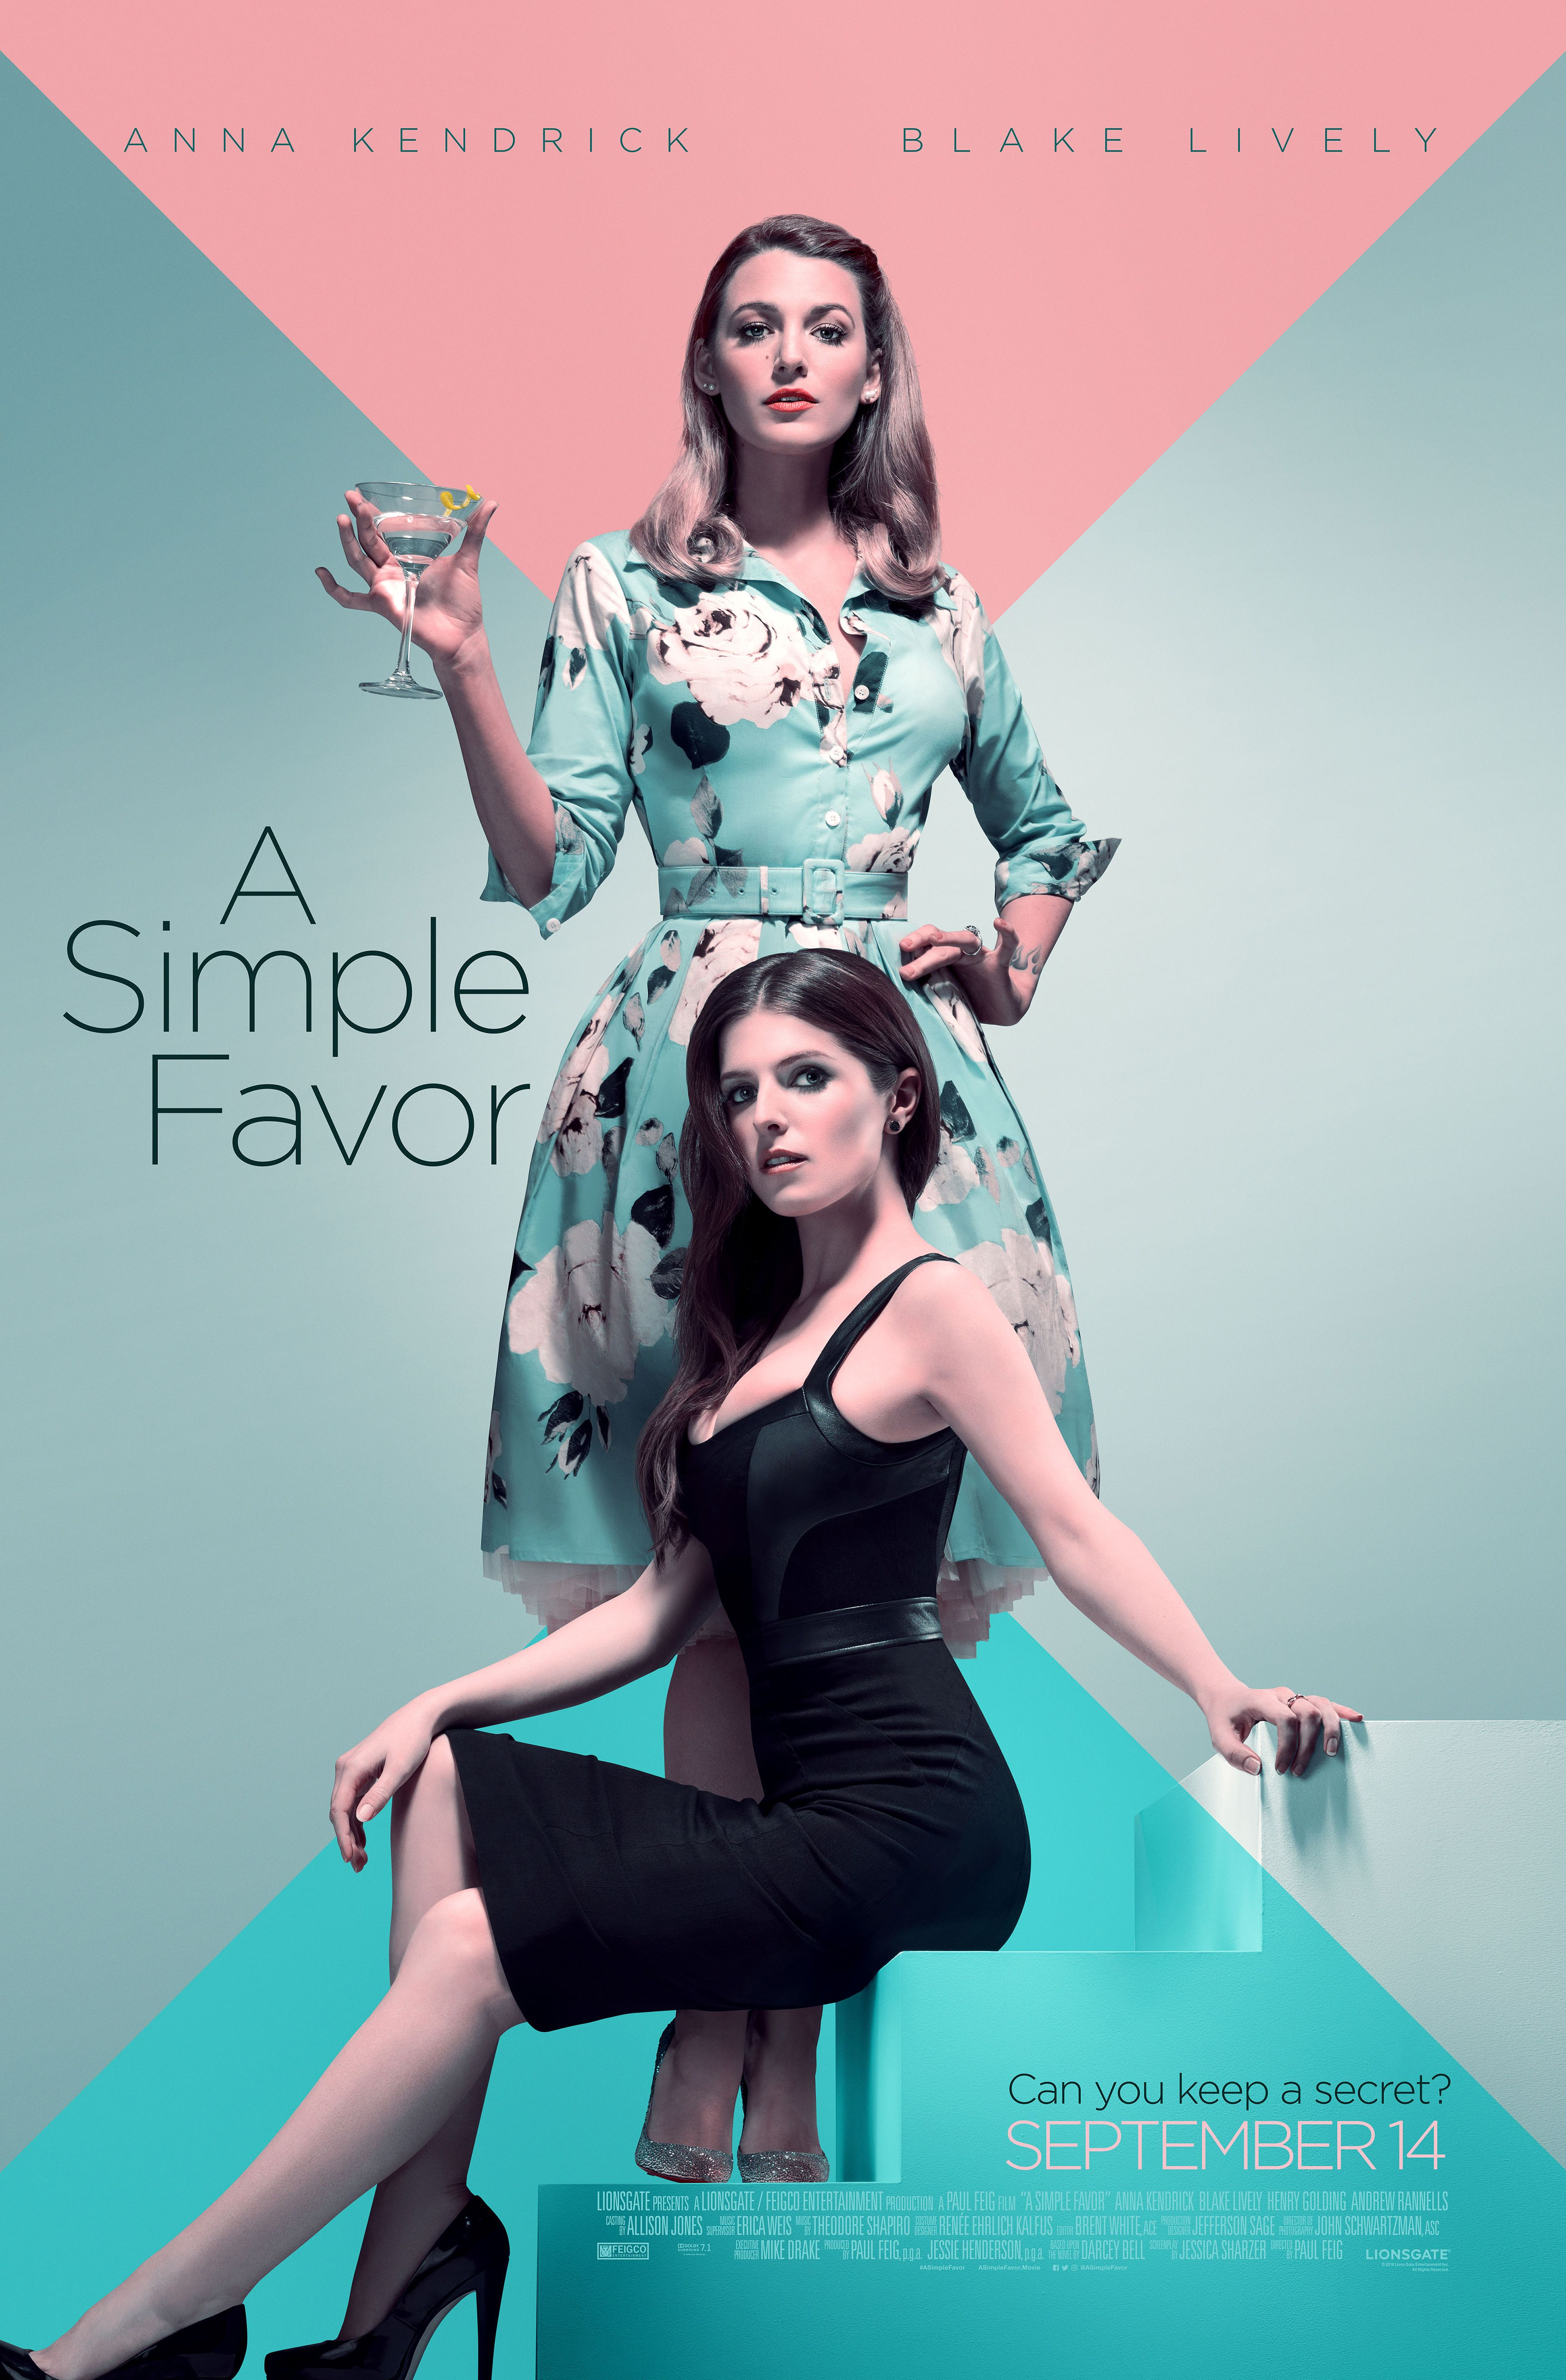 A SIMPLE FAVOR starring Blake Lively & Anna Kendrick | In theaters ...